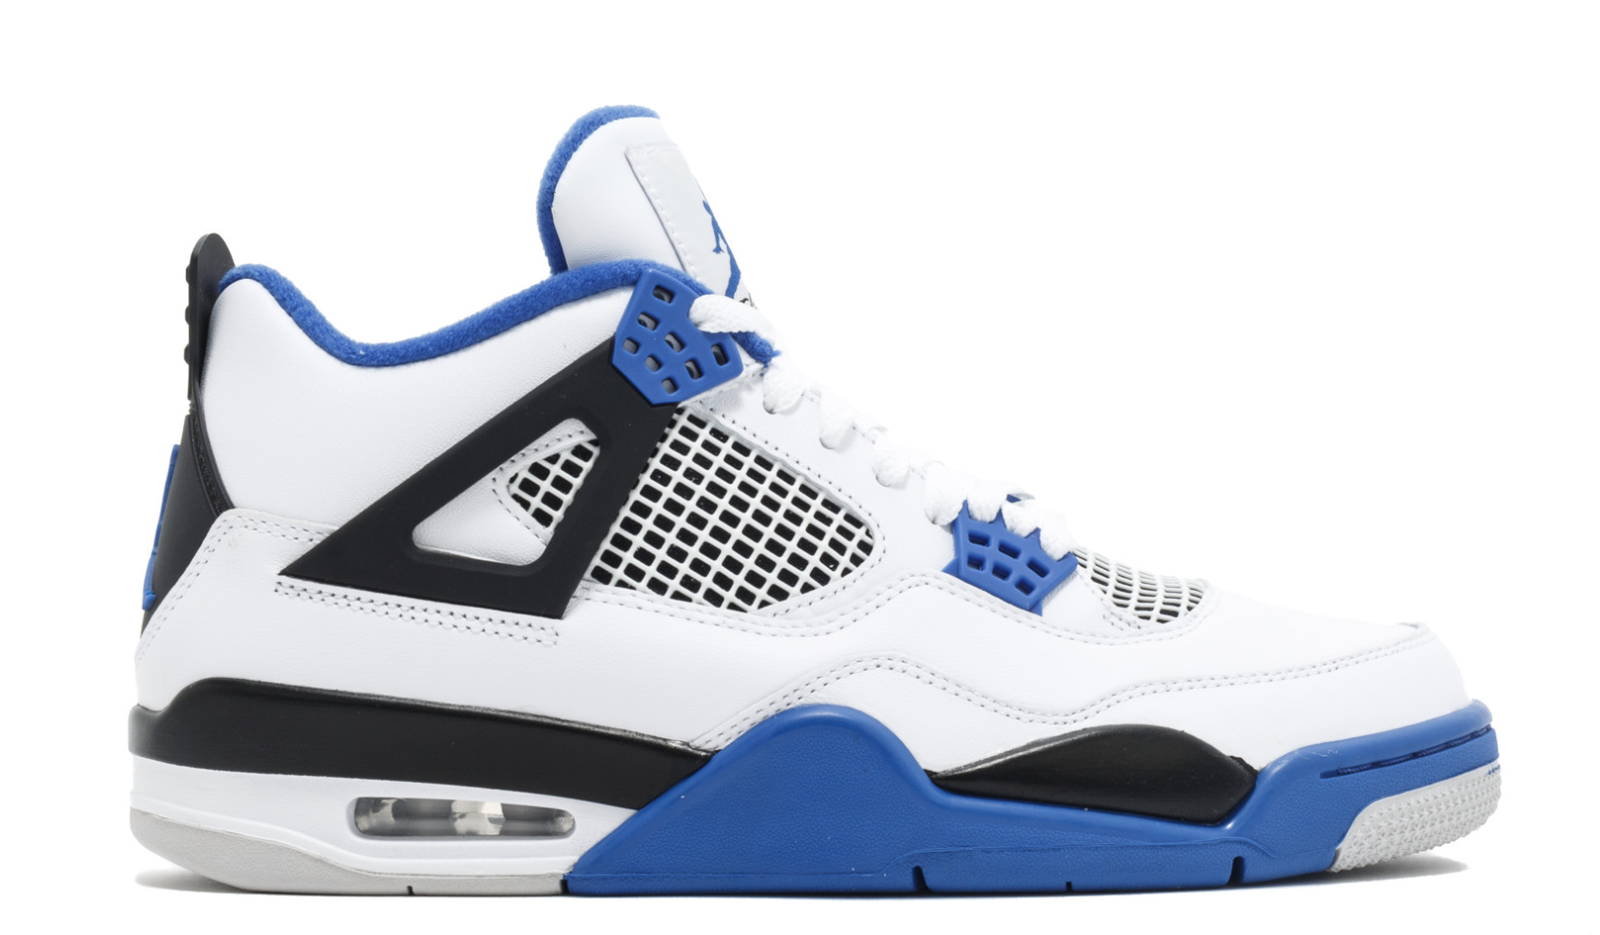 AIR JORDAN 4 MOTORSPORT (Size 13)